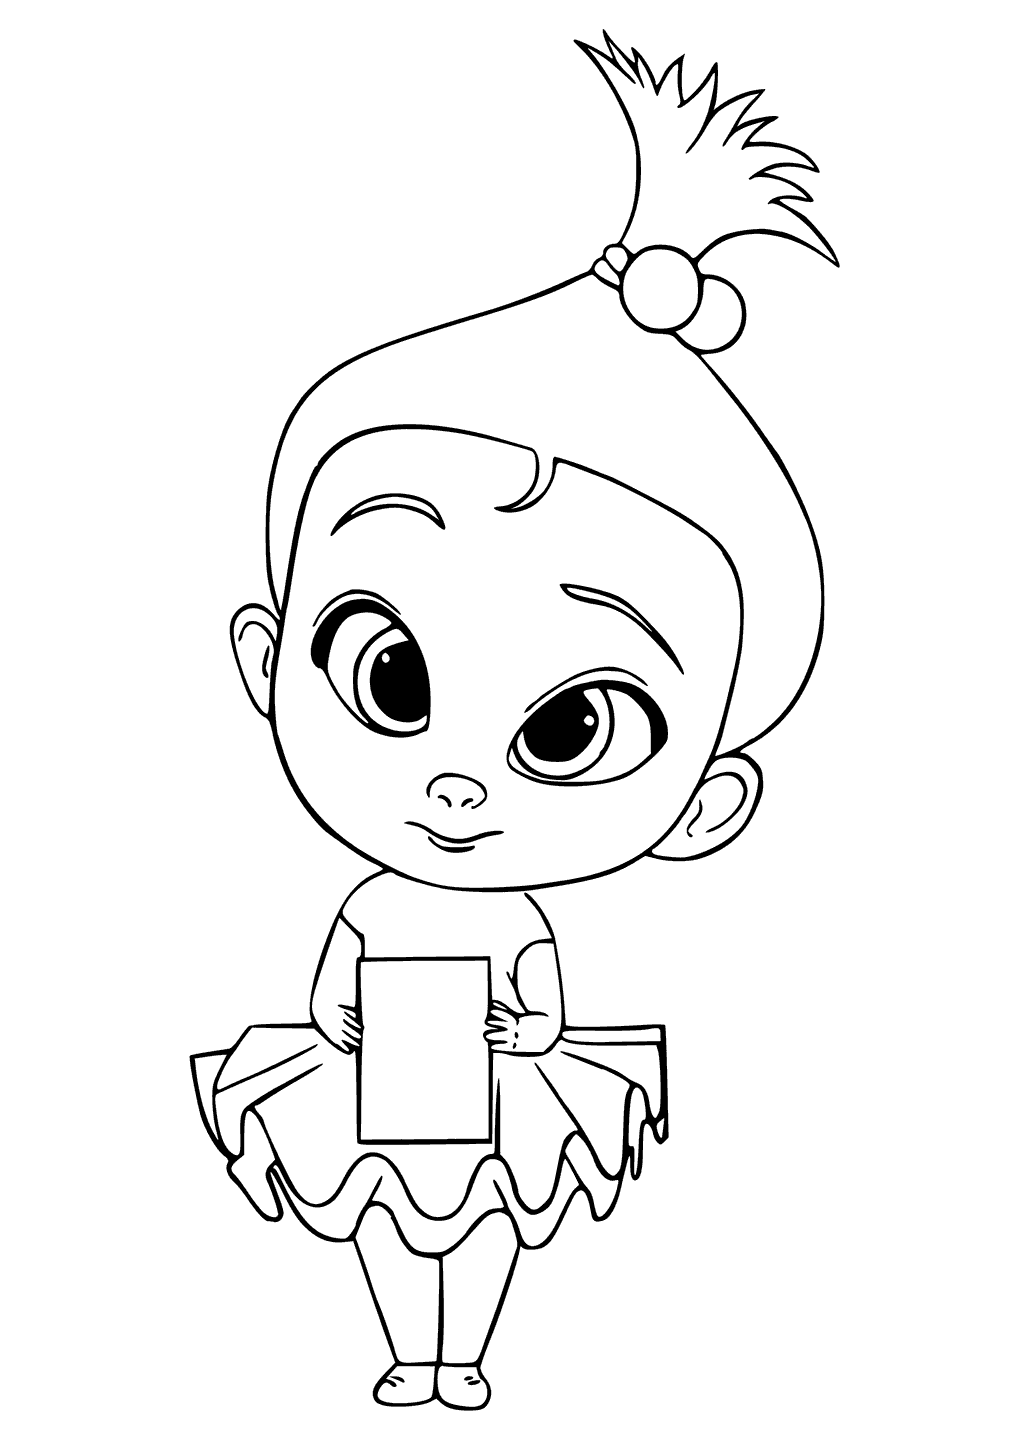 boss baby printable coloring pages the boss baby coloring pages at getcoloringscom free coloring pages boss printable baby